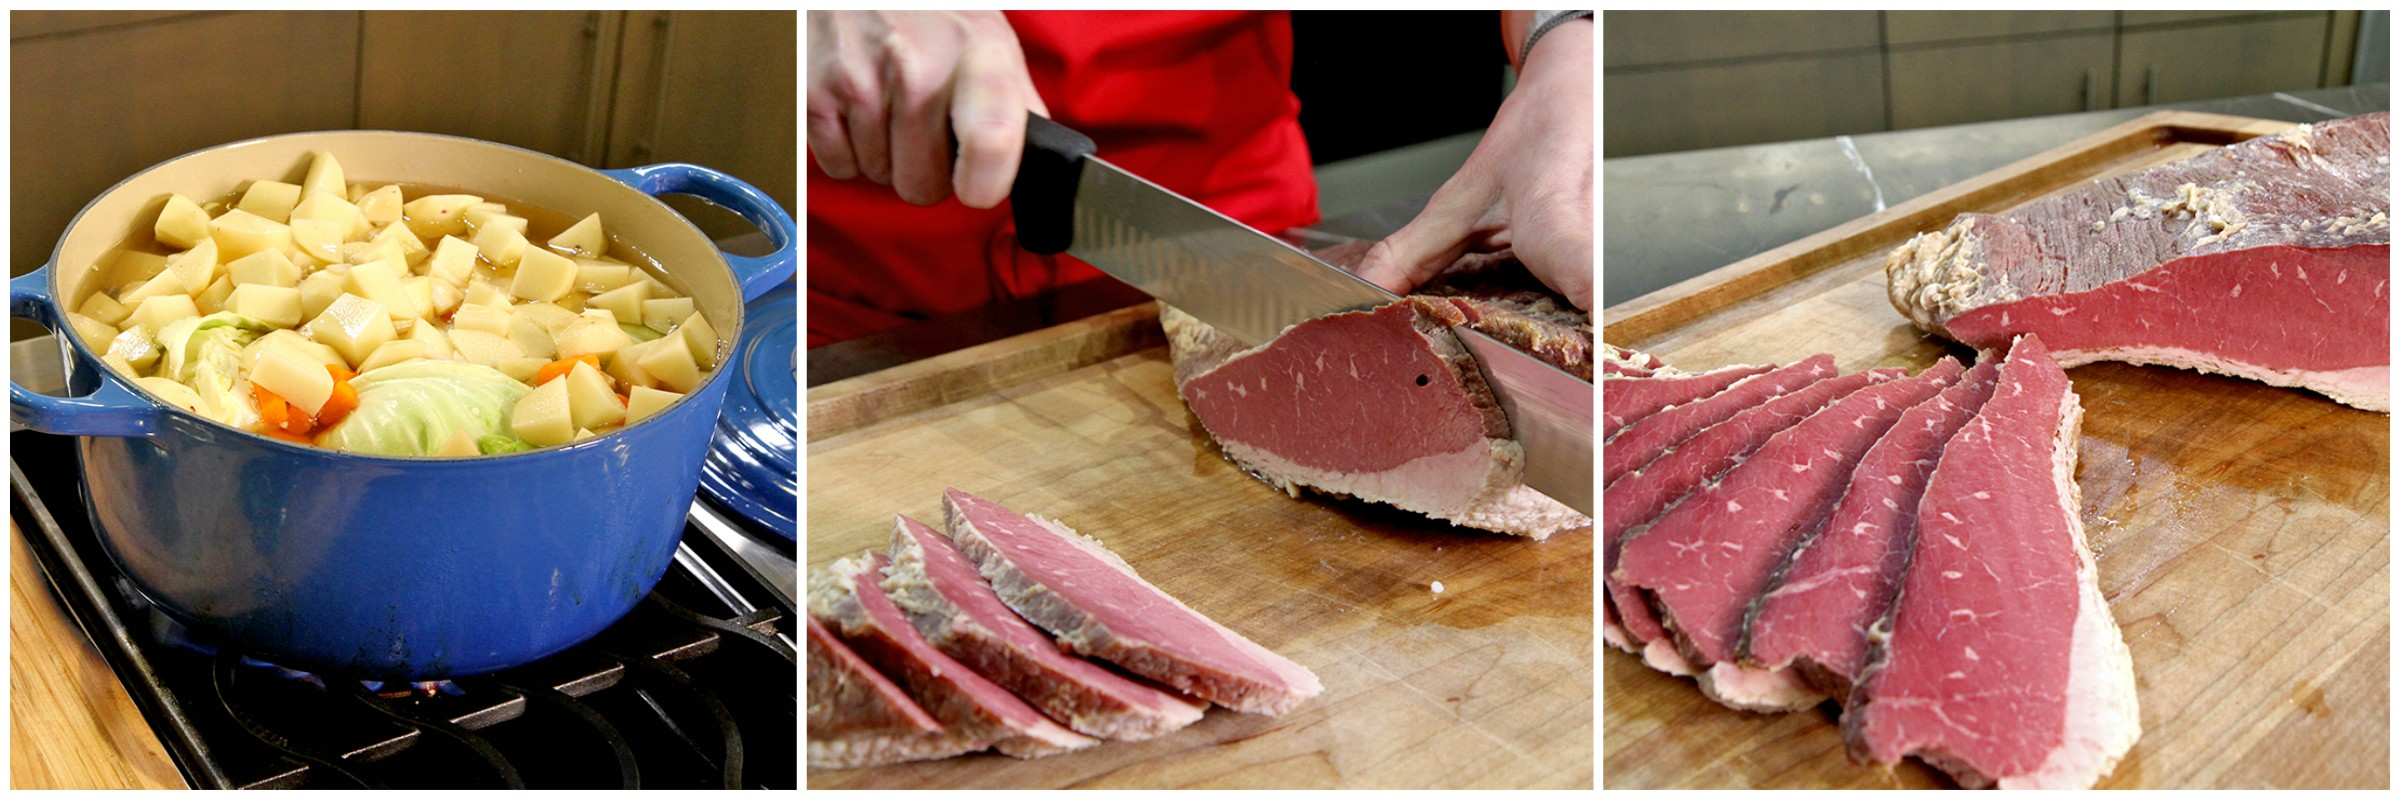 how to cut corned beef